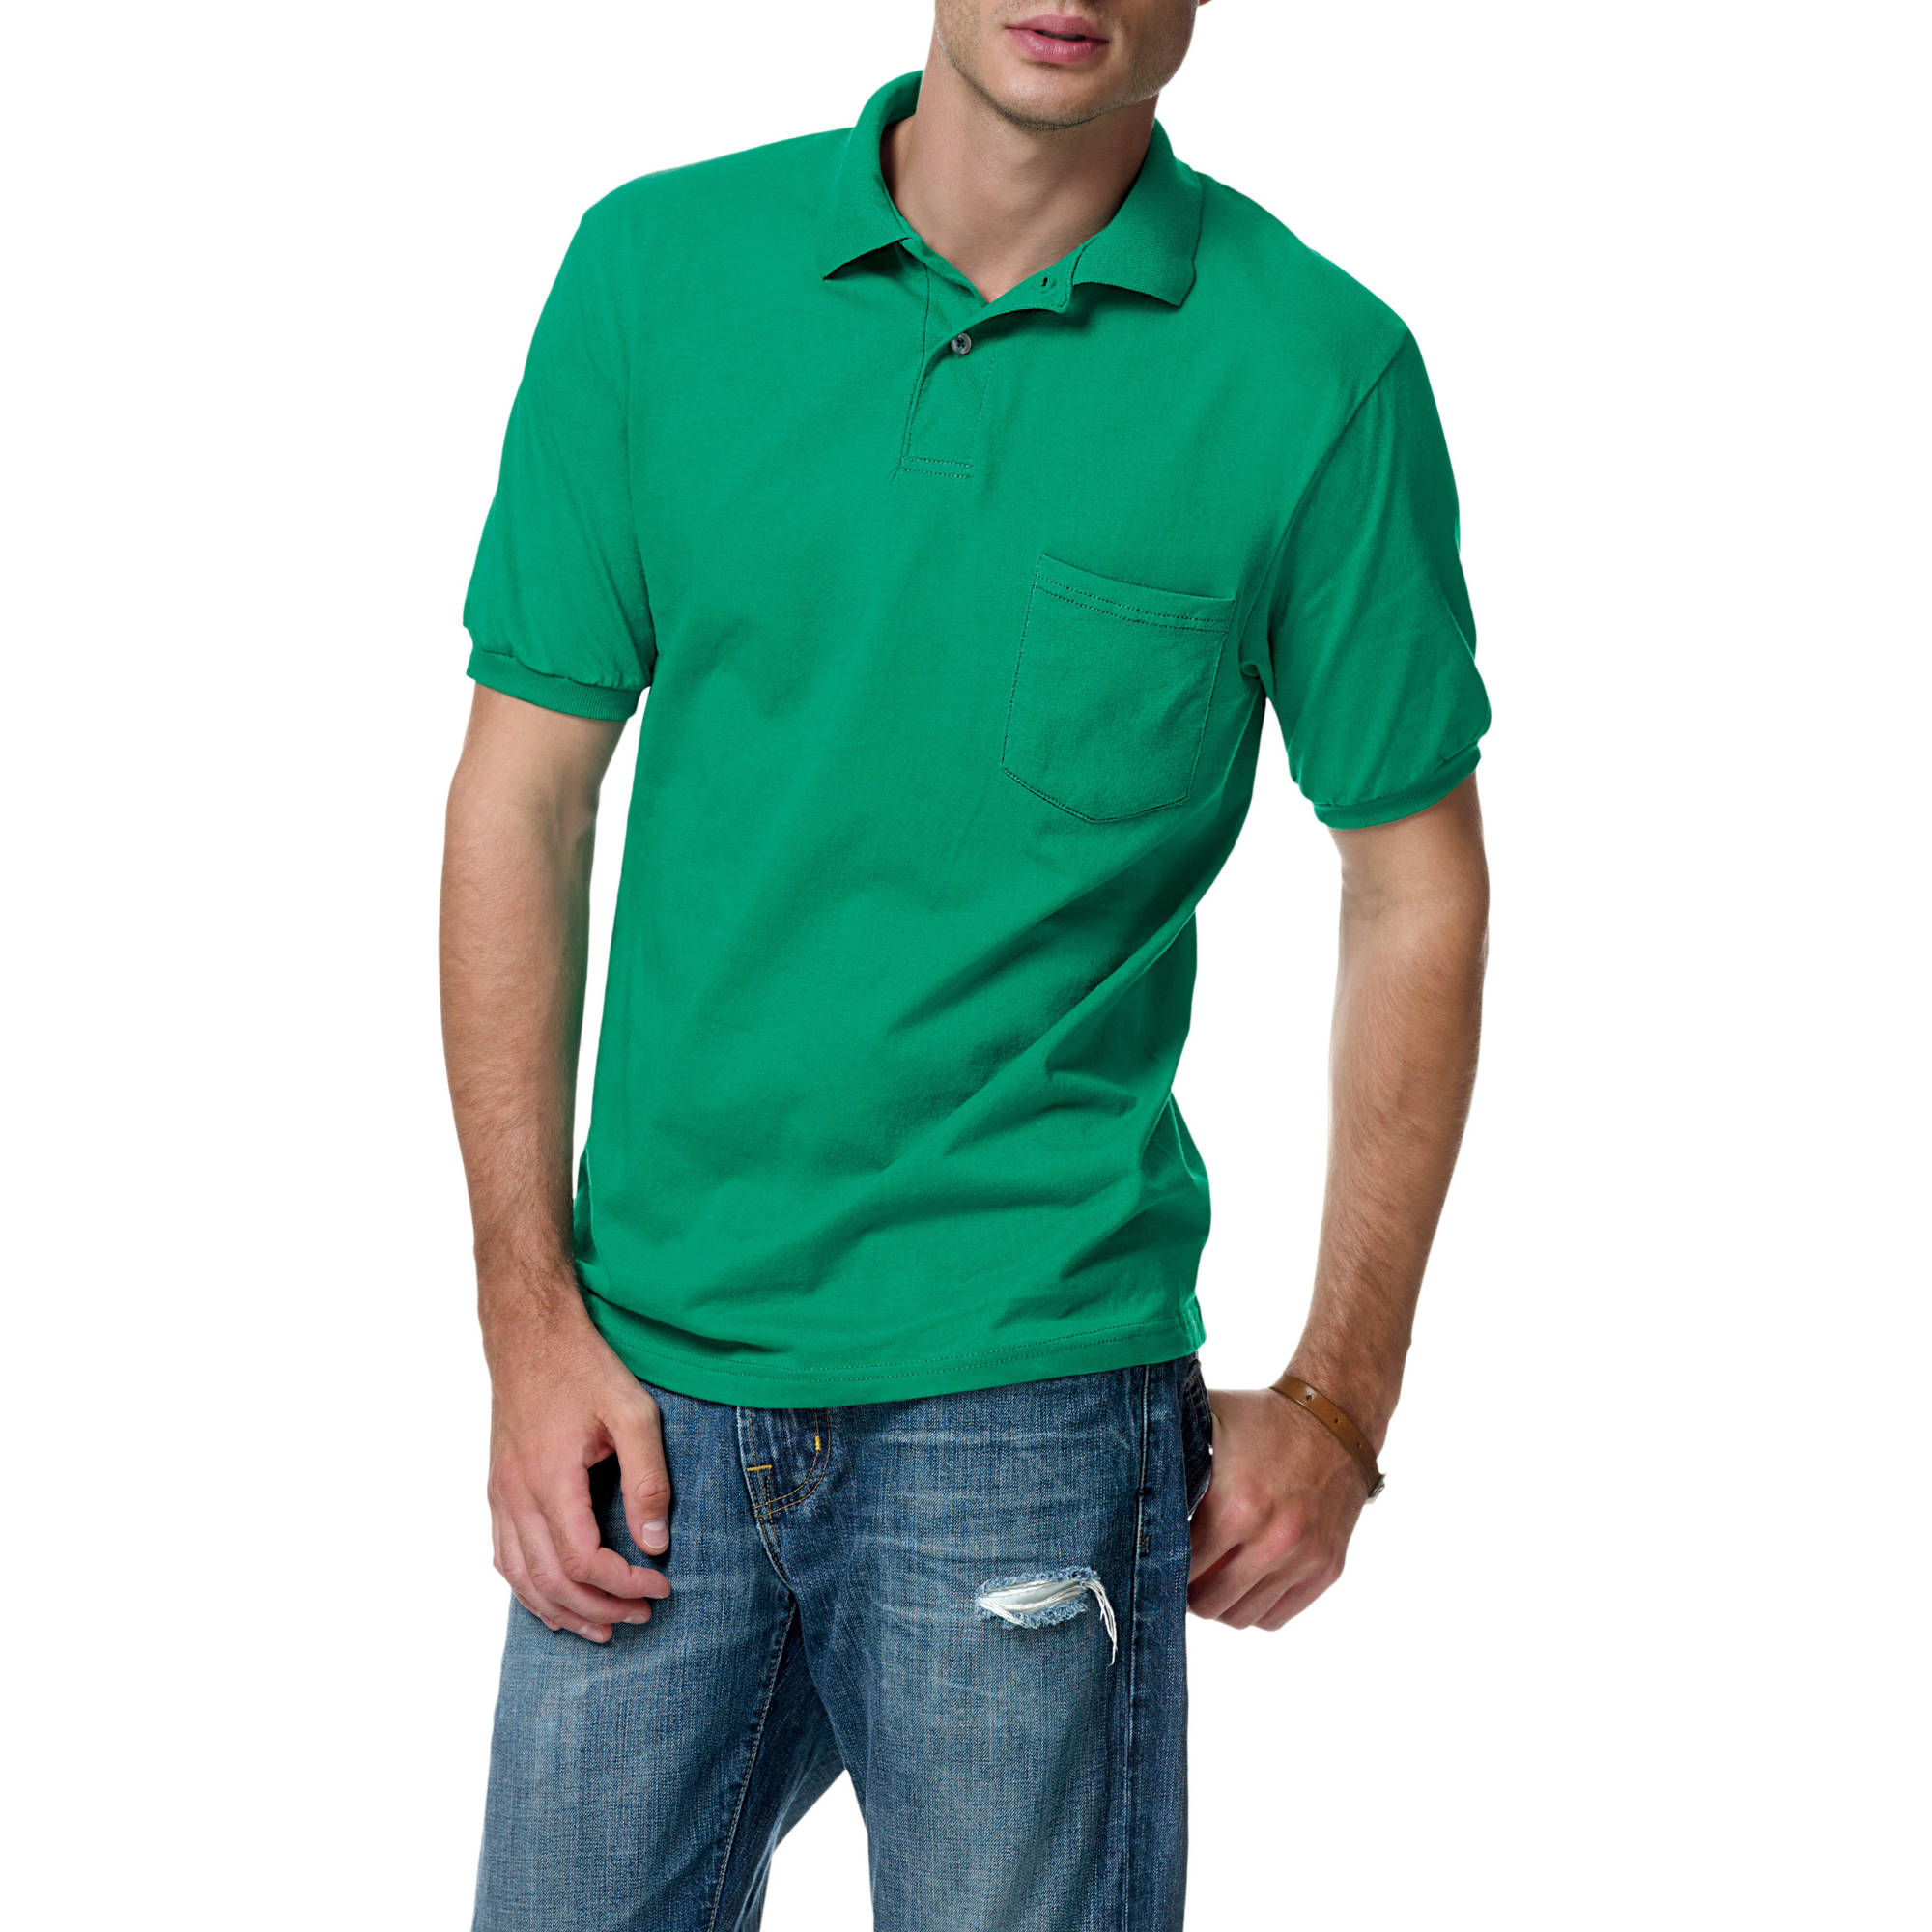 Hanes Men's Comfortblend EcoSmart Jersey Polo with Pocket